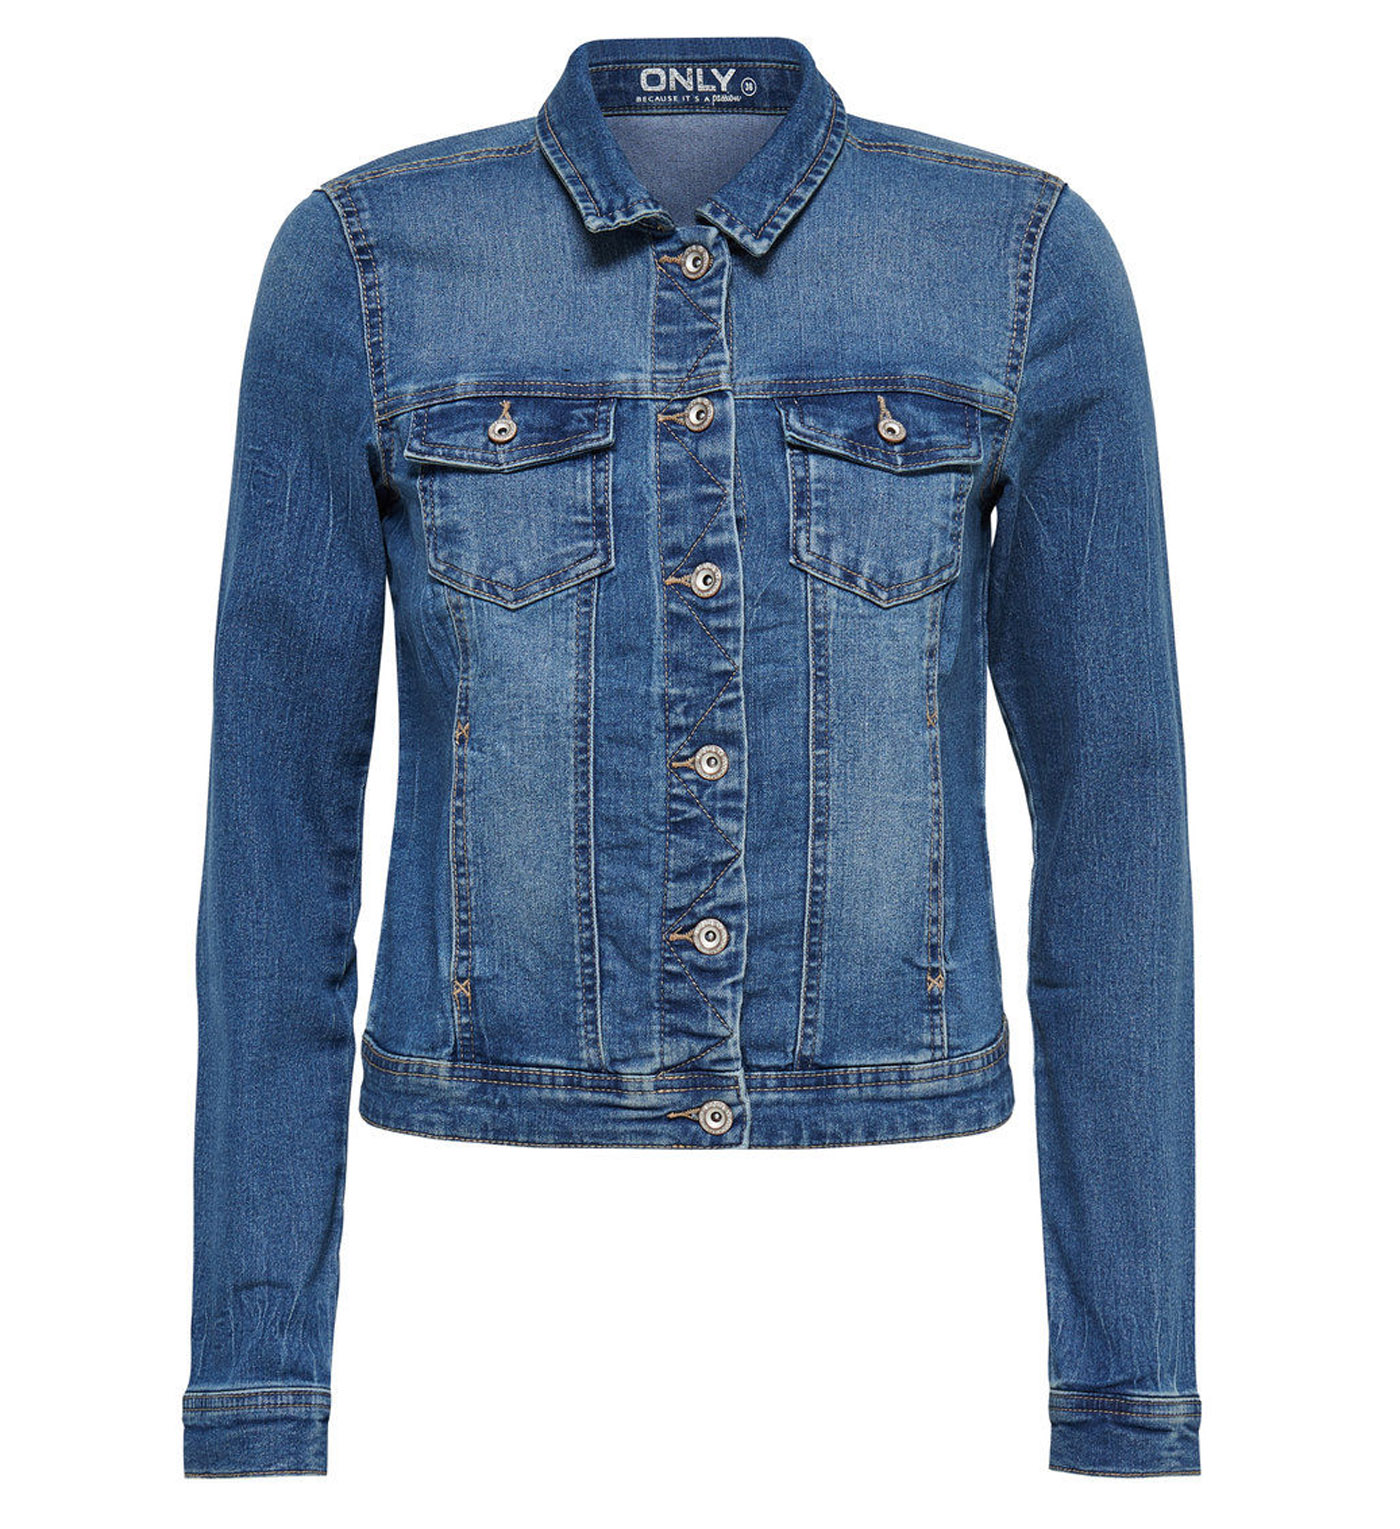 Find best value and selection for your New York Company Denim Jacket search on eBay. World's leading marketplace. New York & Company NY Denim Blue Jean Jacket Women's Size S % Cotton. $; Buy It Now Show only see all Show only. Free Returns. Returns accepted. Completed listings. Sold listings.